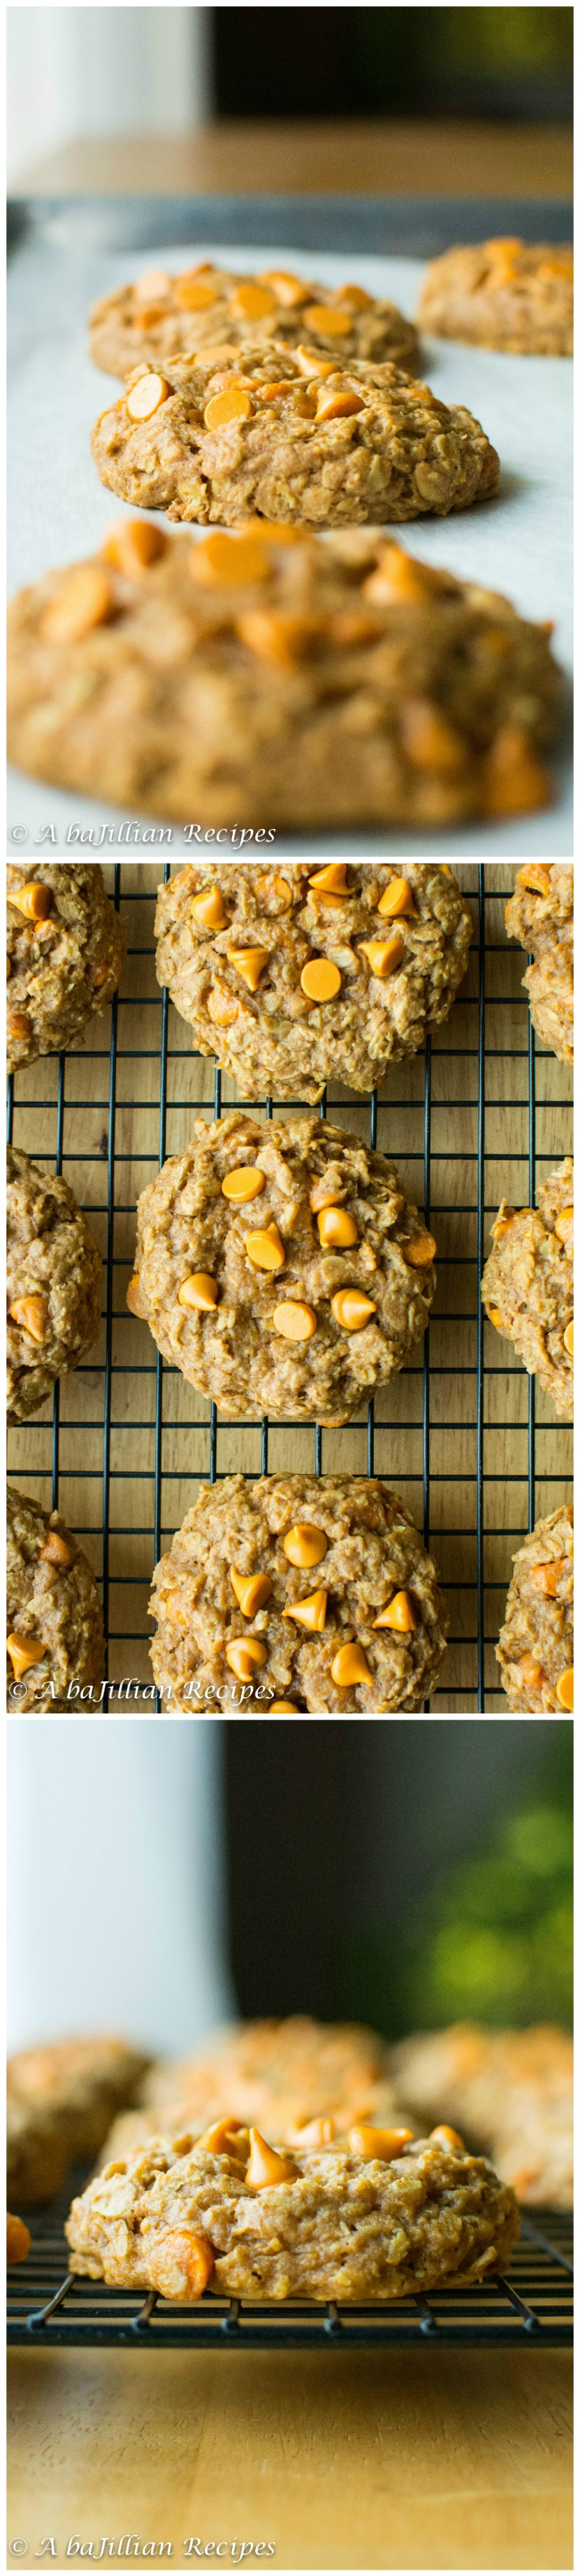 Pumpkin Oatmeal Cookies4